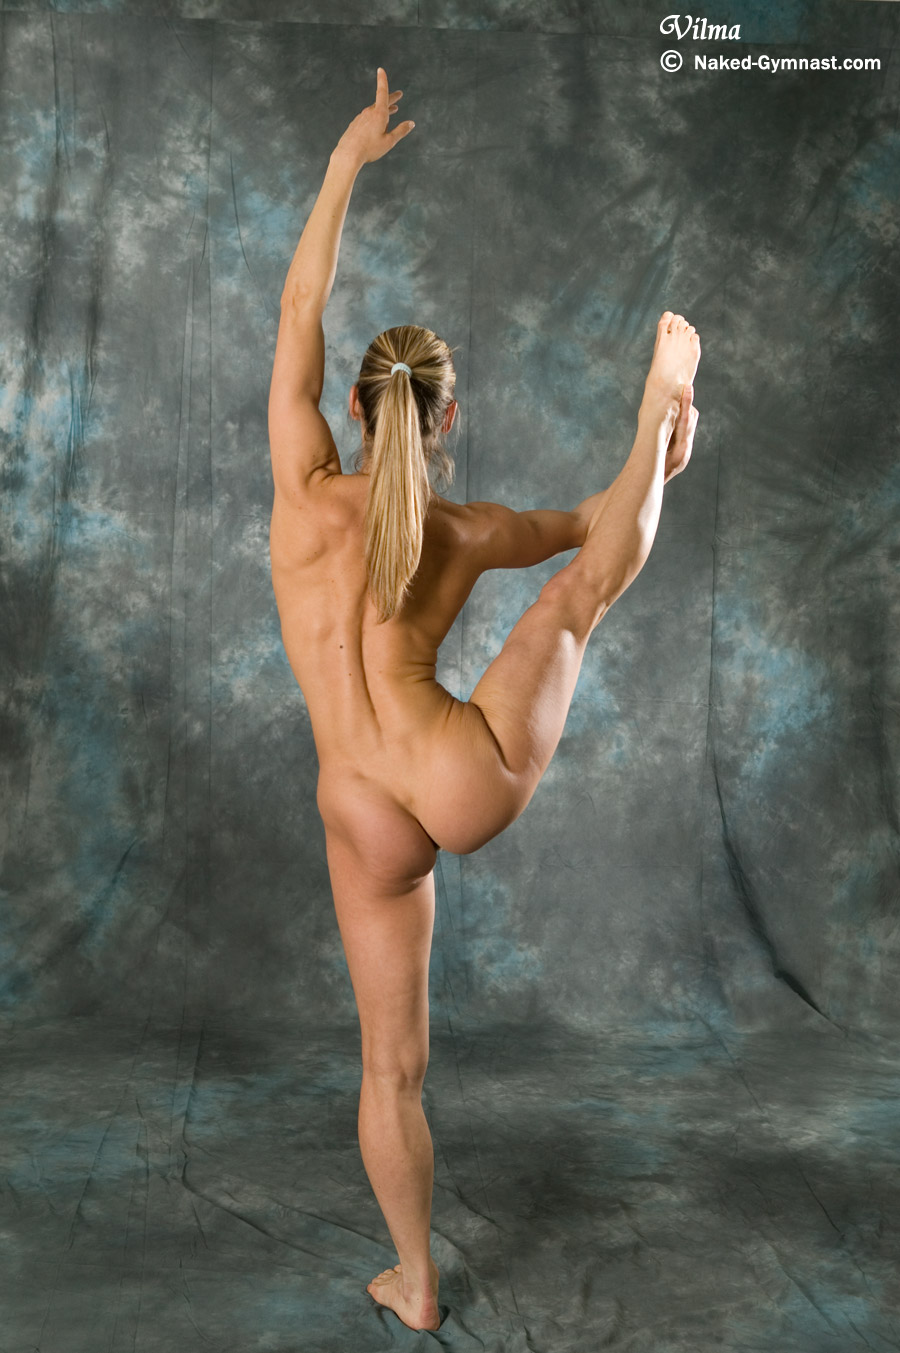 Youtube Nude Gymnast 60